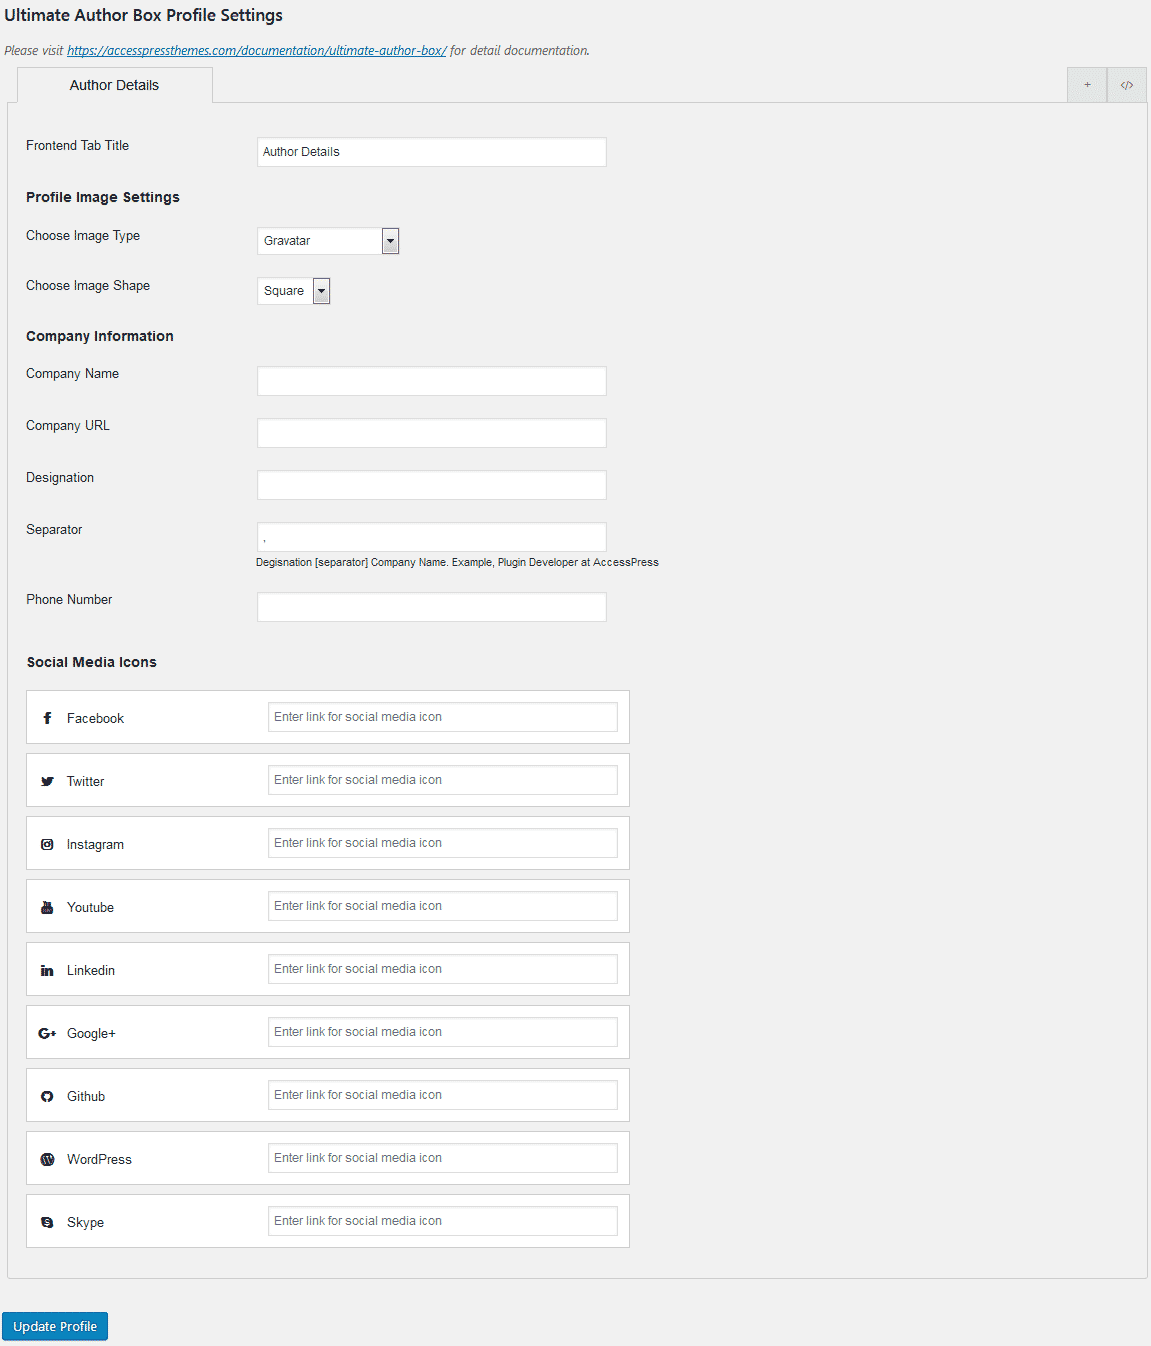 ultimate author box lite profile settings - How to Add Author Bio Box on WordPress Blogs? (Step by Step Guide)